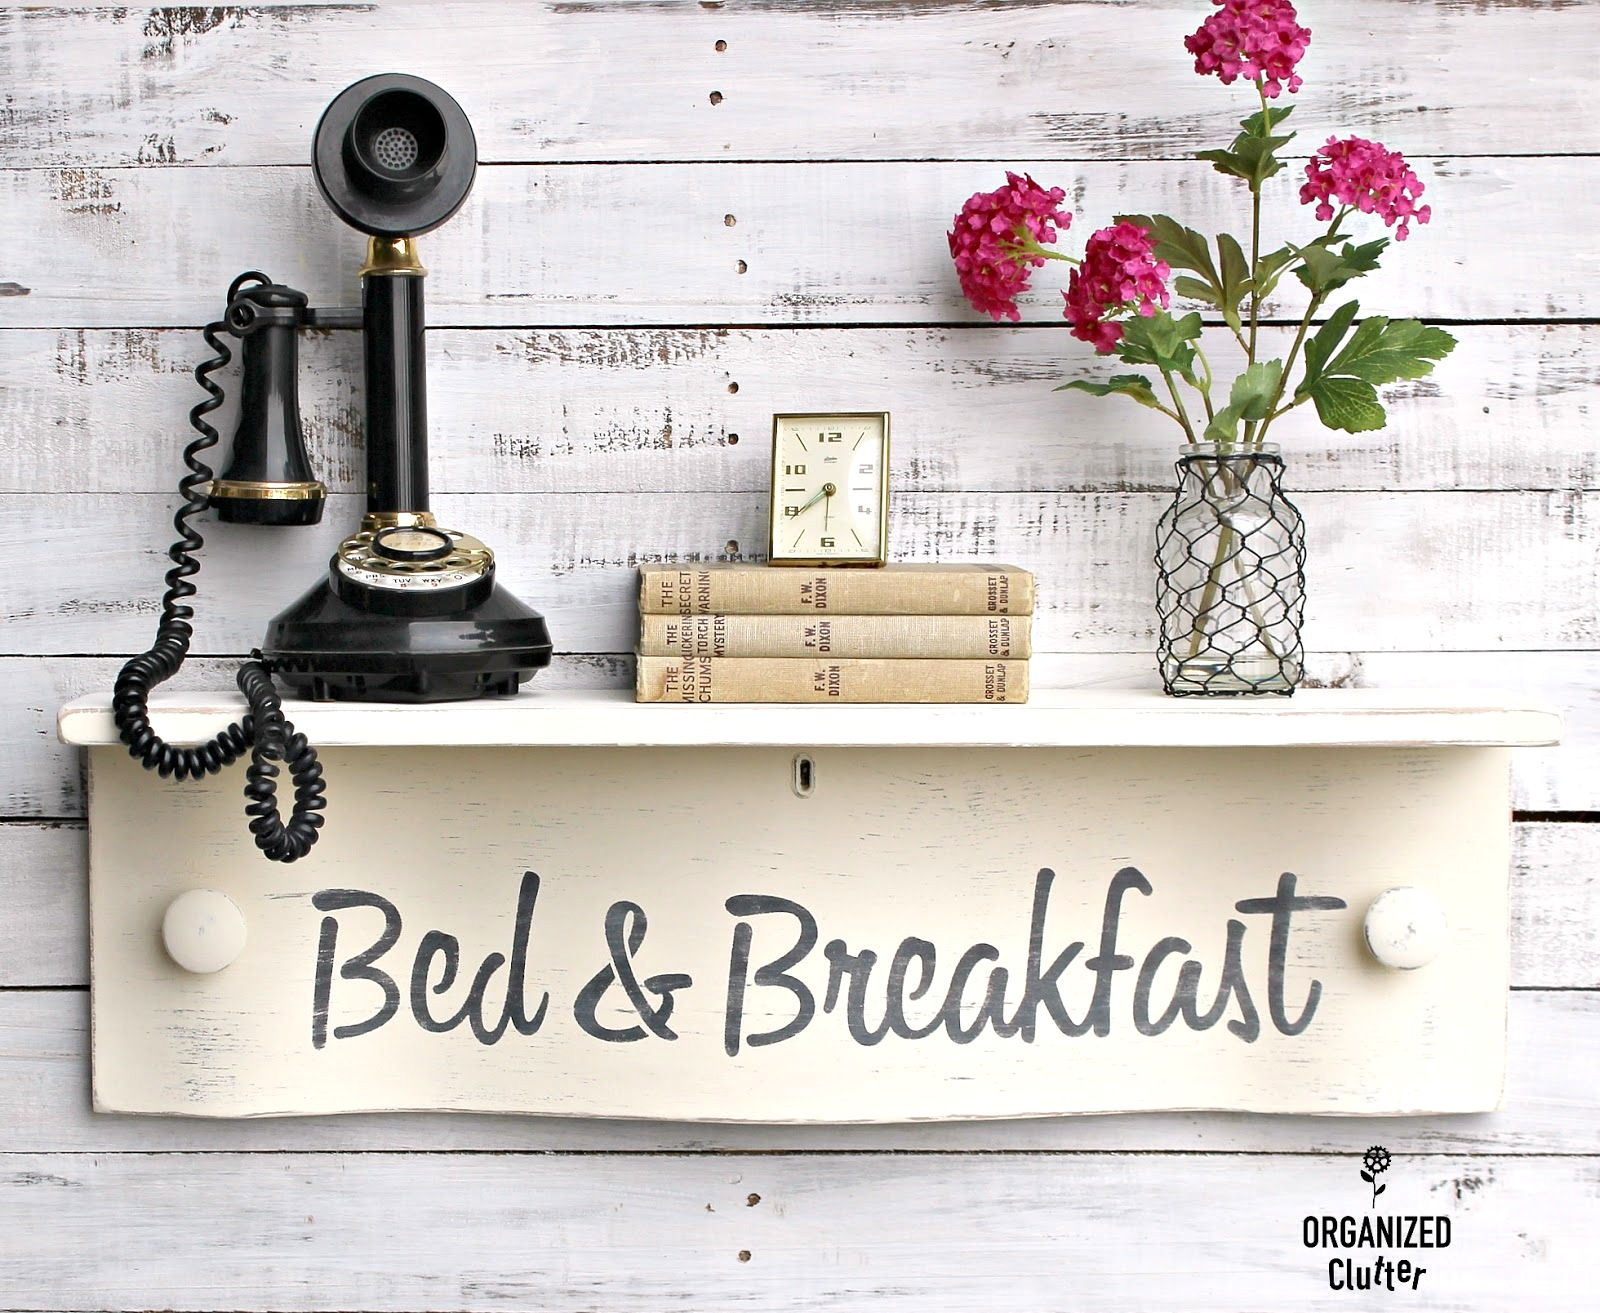 Bed and Breakfast antique drawer wall shelf and sign by Organized Clutter, featured on Funky Junk Interiors